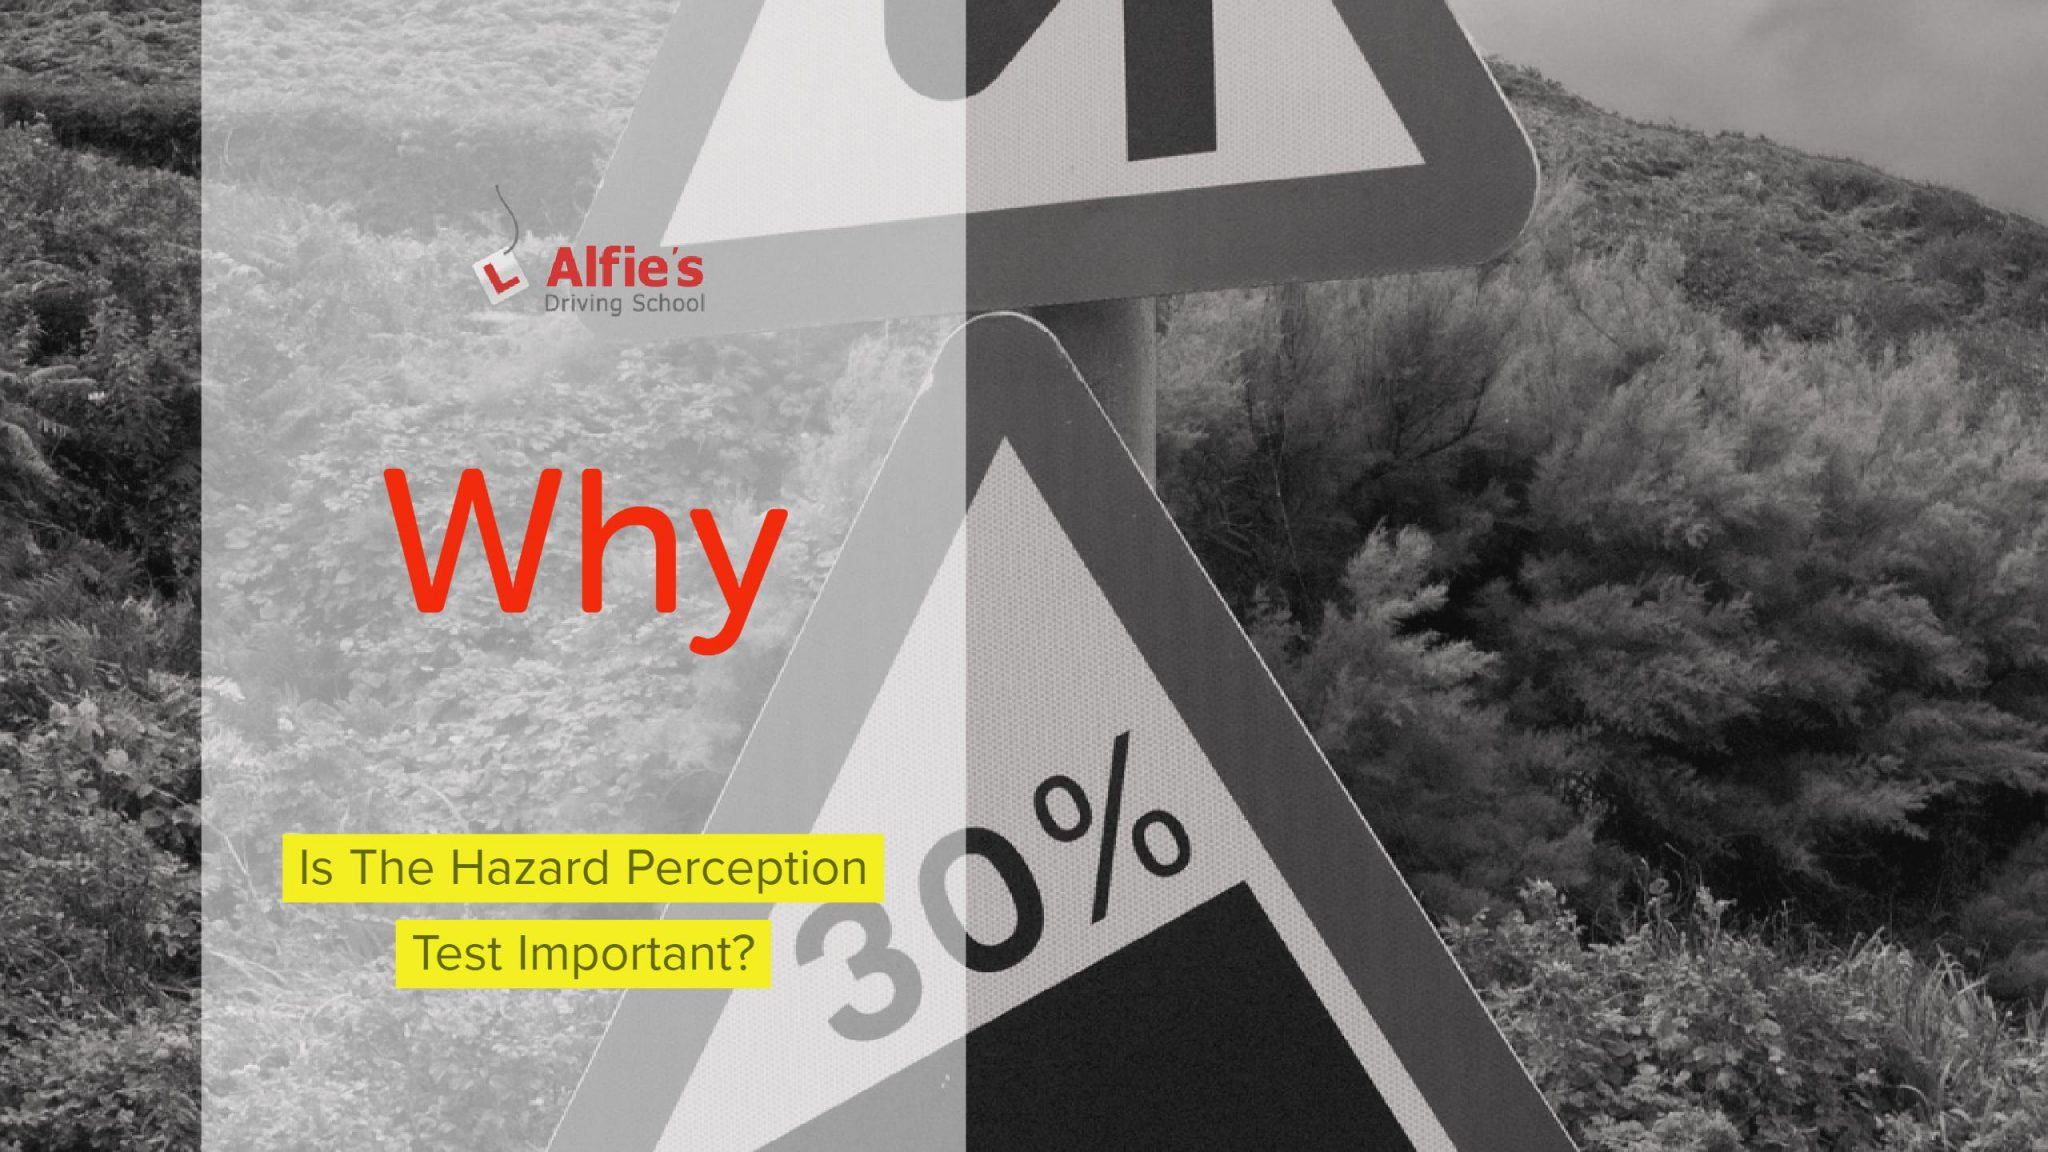 Hazard Perception Test Important